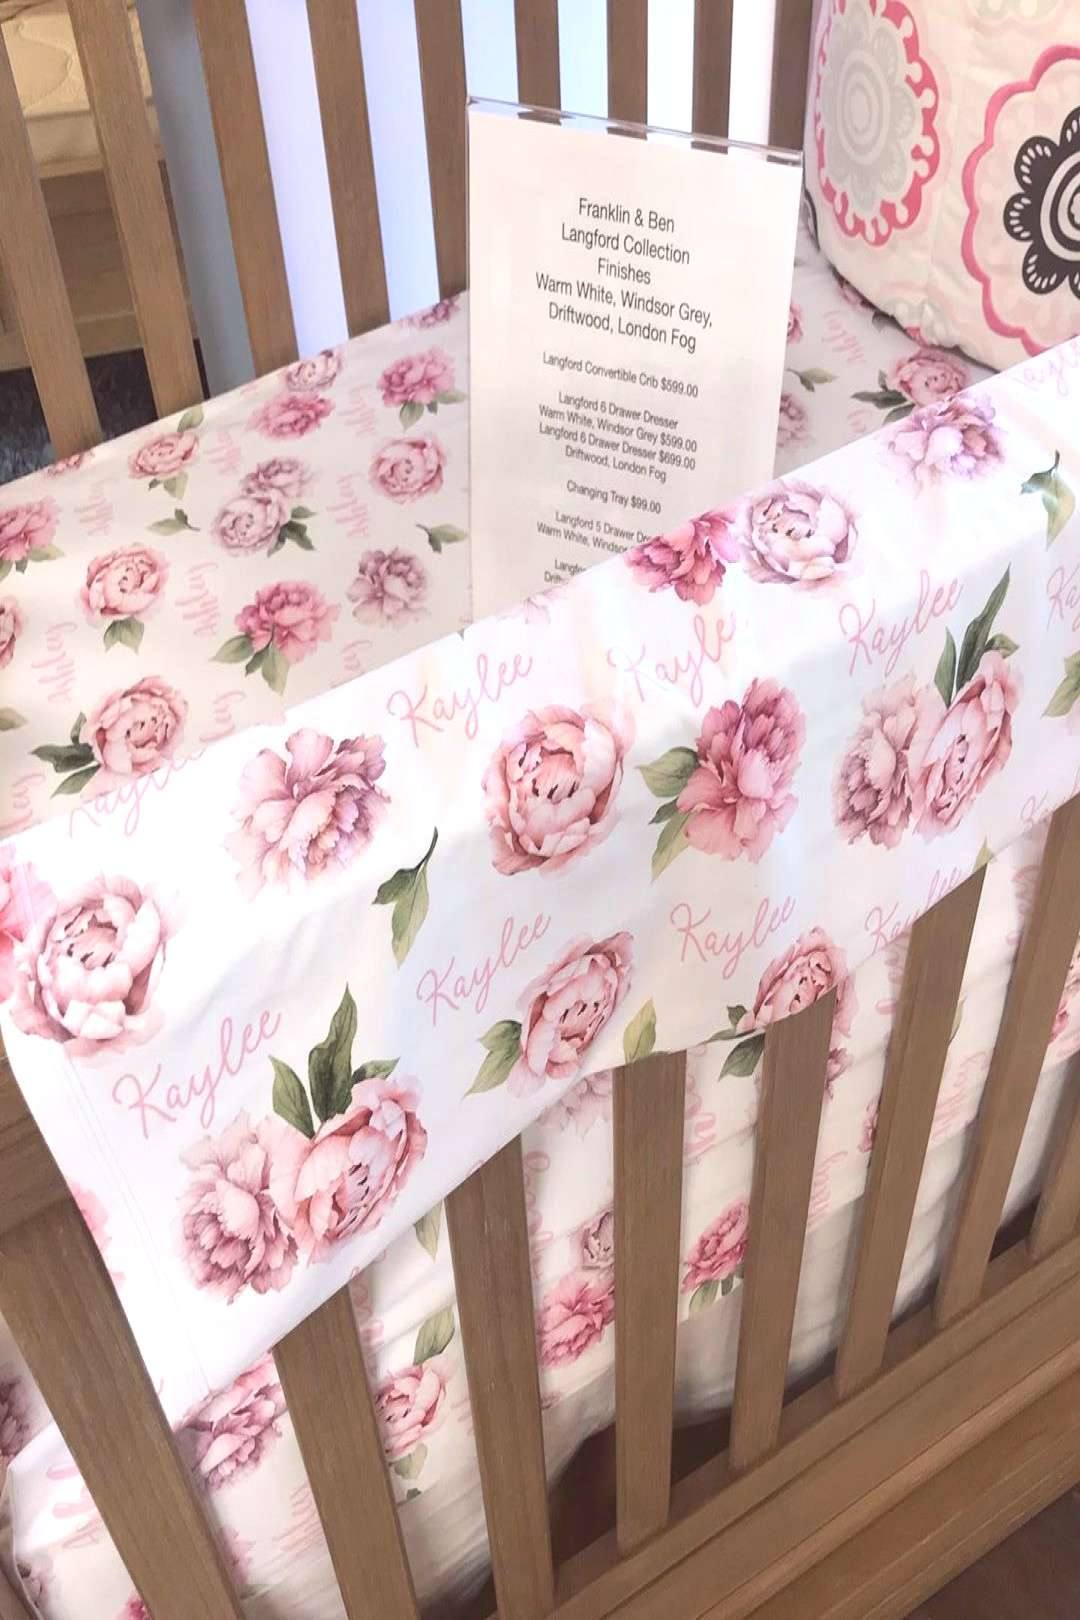 Fabulous crib linens personalized just for your little one!!! So